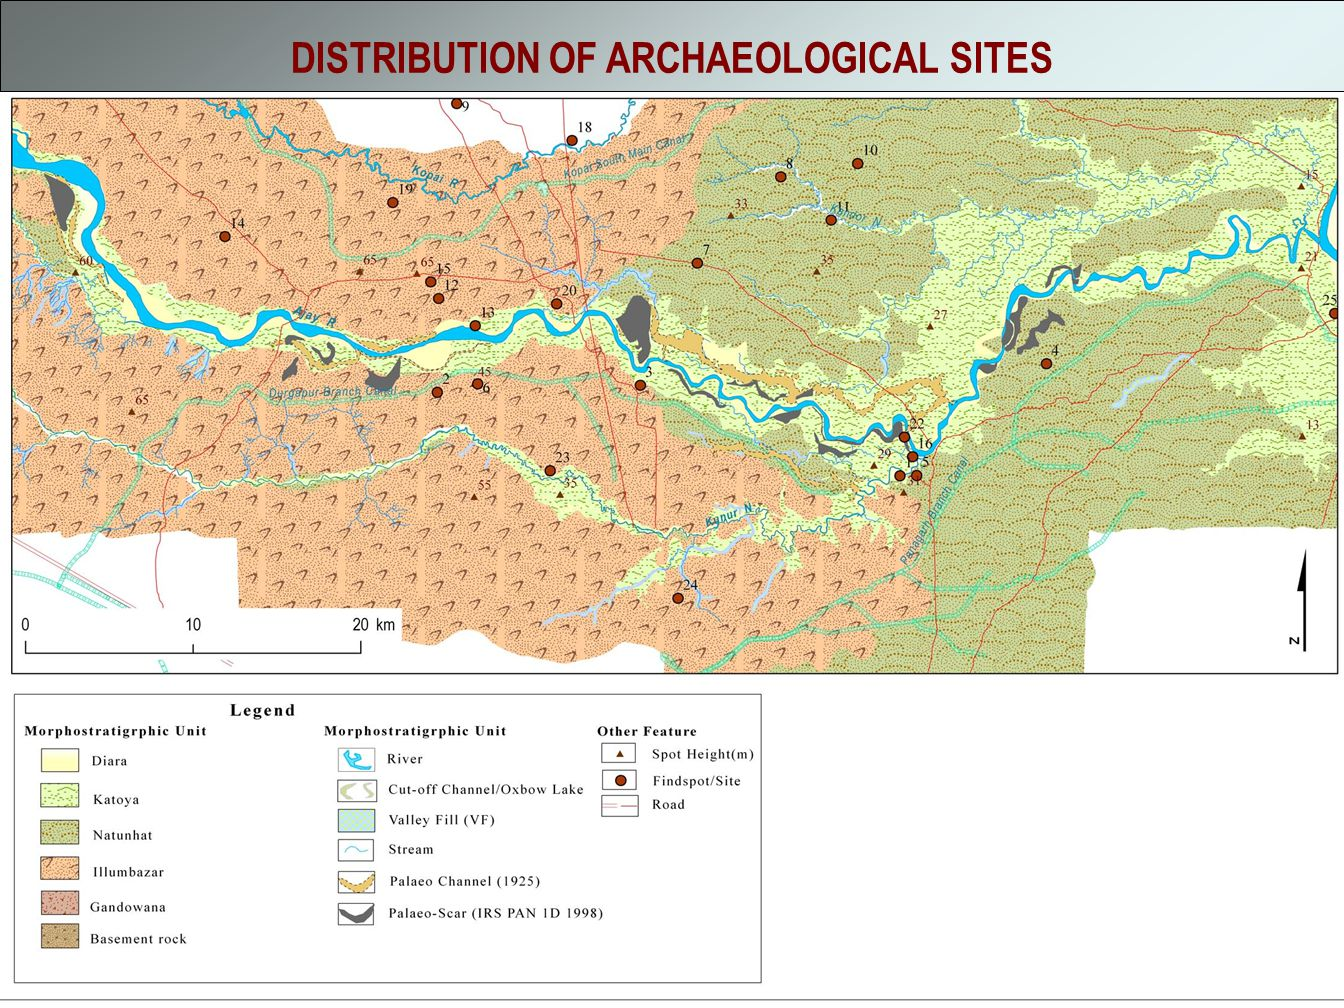 DISTRIBUTION OF ARCHAEOLOGICAL SITES